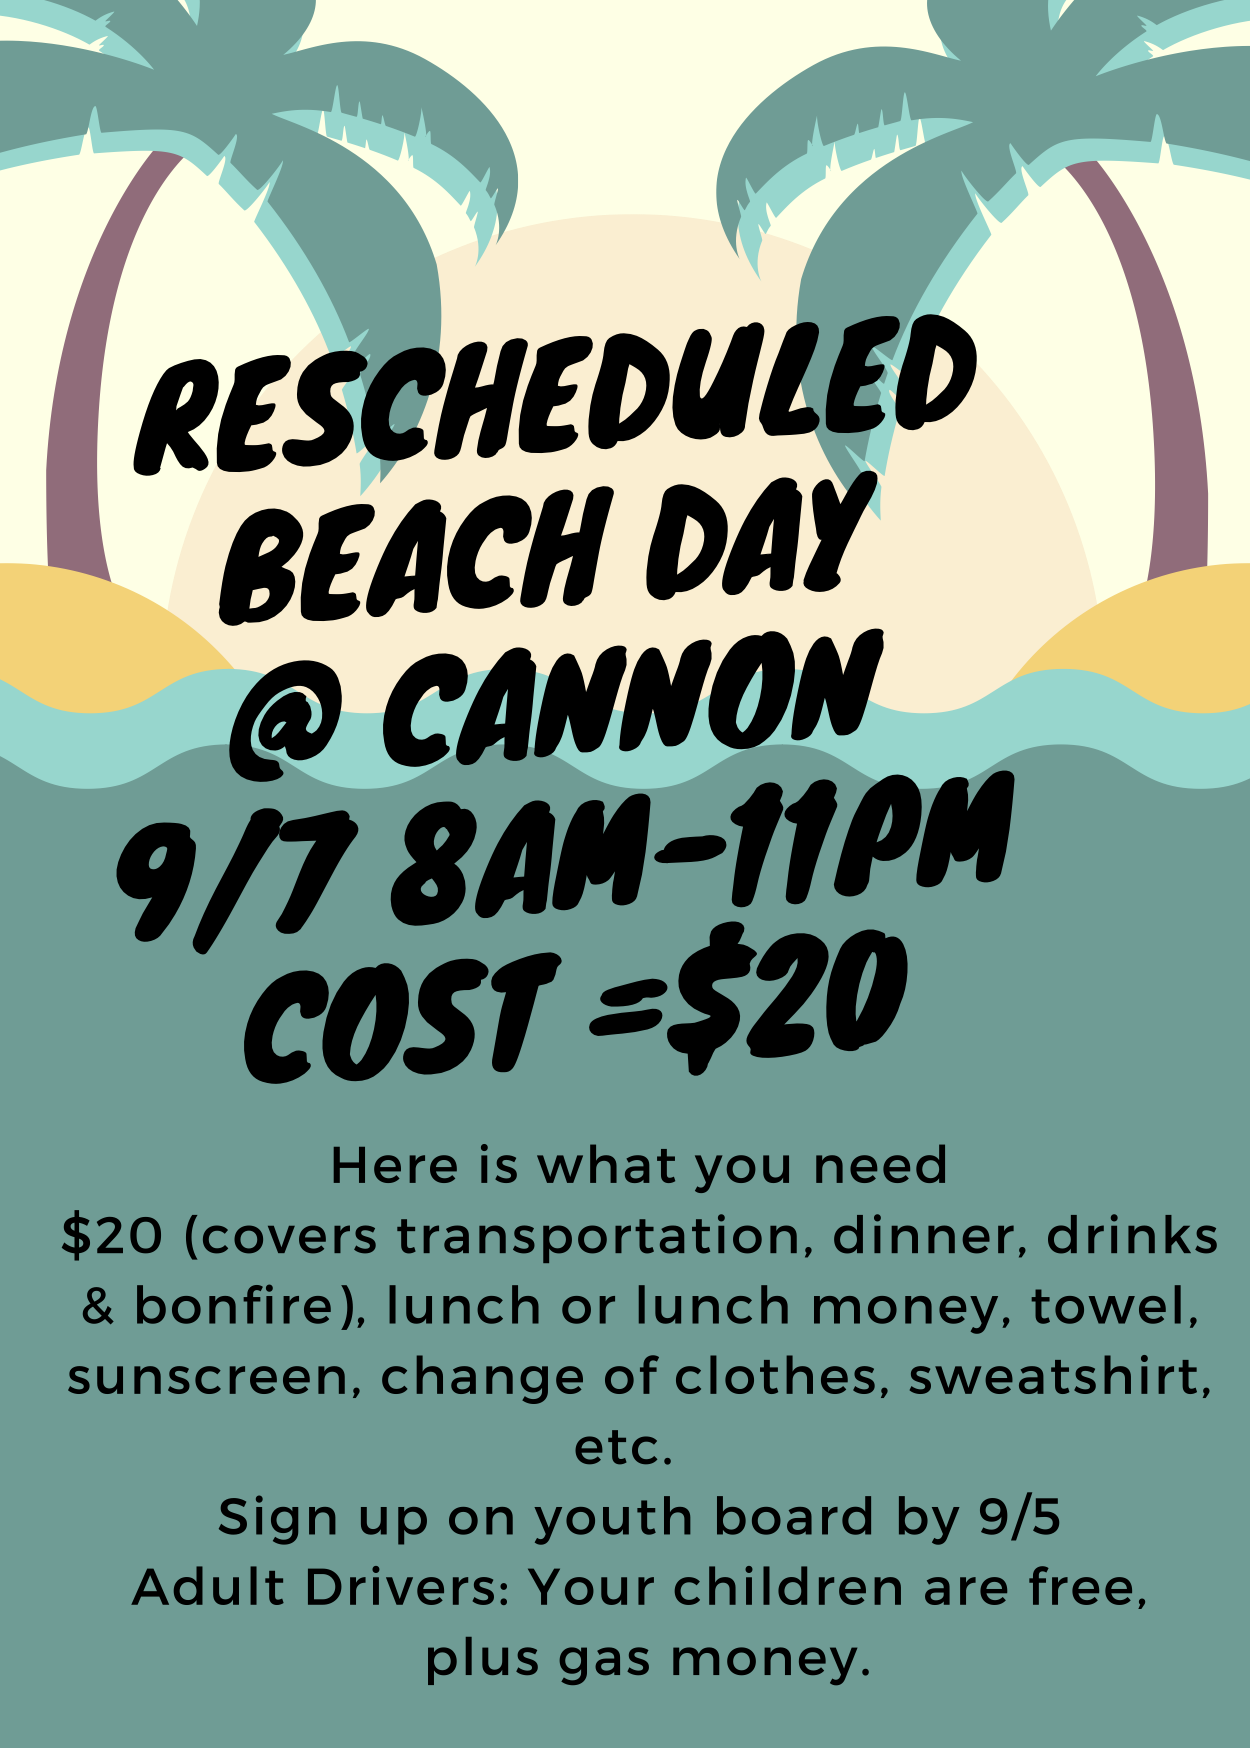 Come join us September 7th for a trip to Cannon Beach!